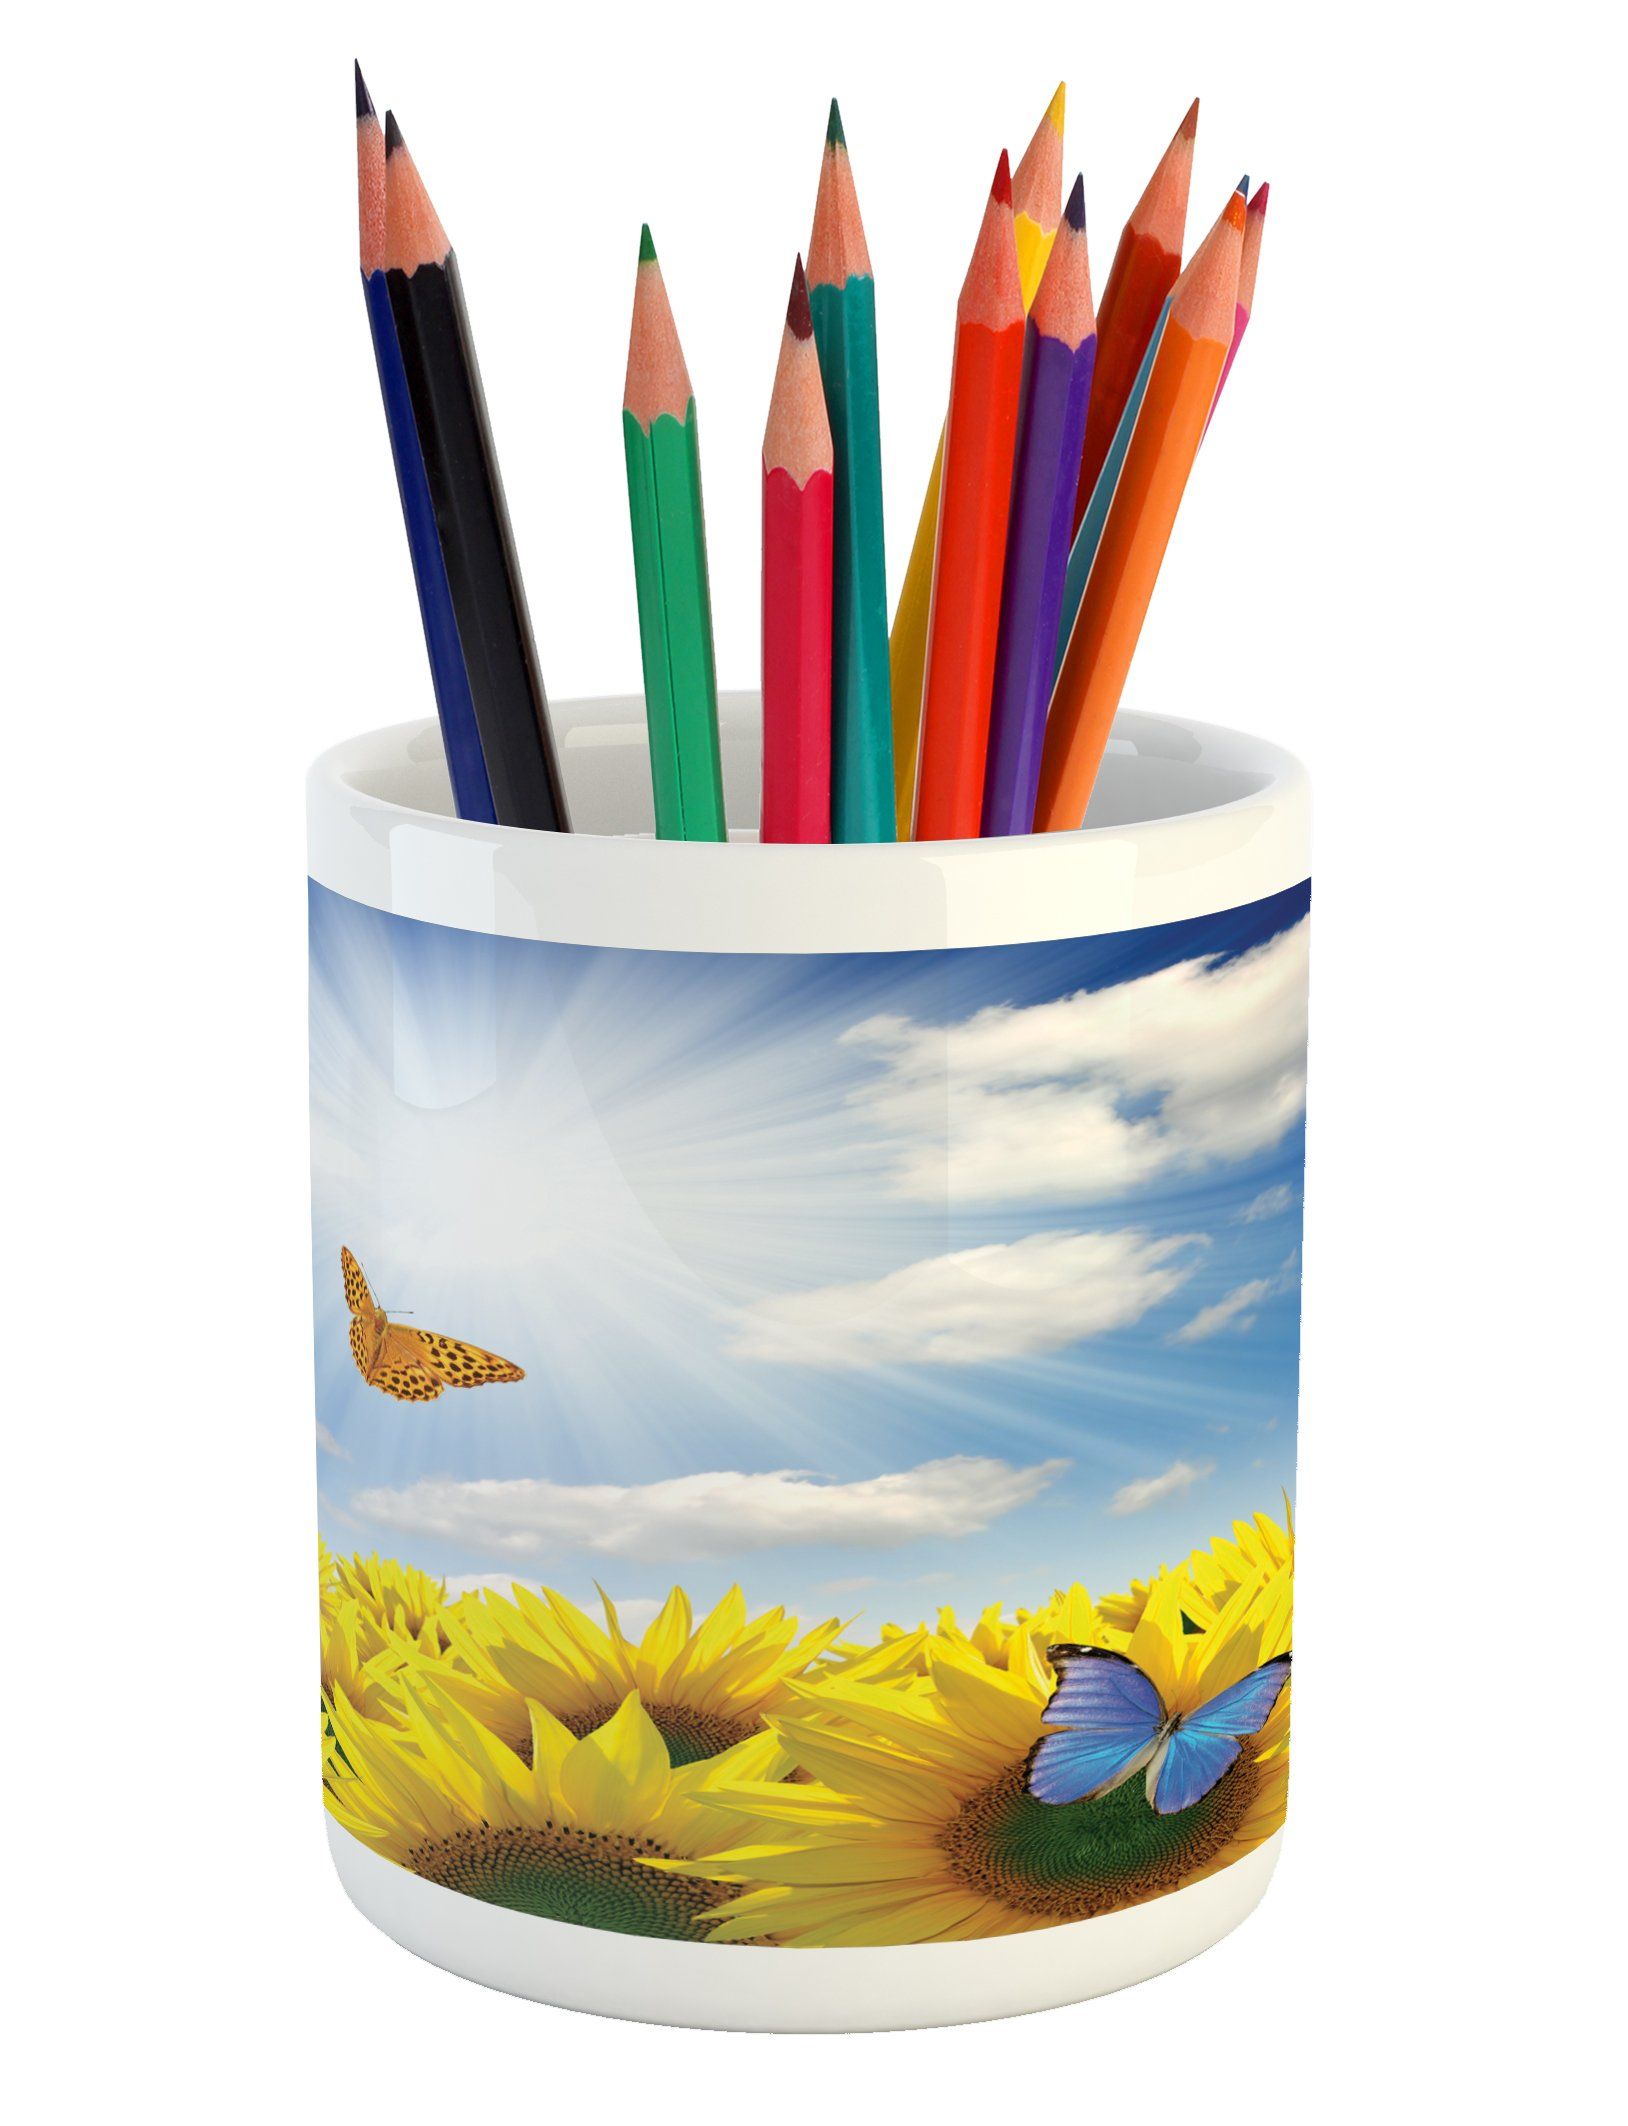 Lunarable Sunflower Pencil Pen Holder, Sunflowers in Meadow with Butterflies Floral Image Country Style Home Design, Printed Ceramic Pencil Pen Holder for Desk Office Accessory, Yellow Blue